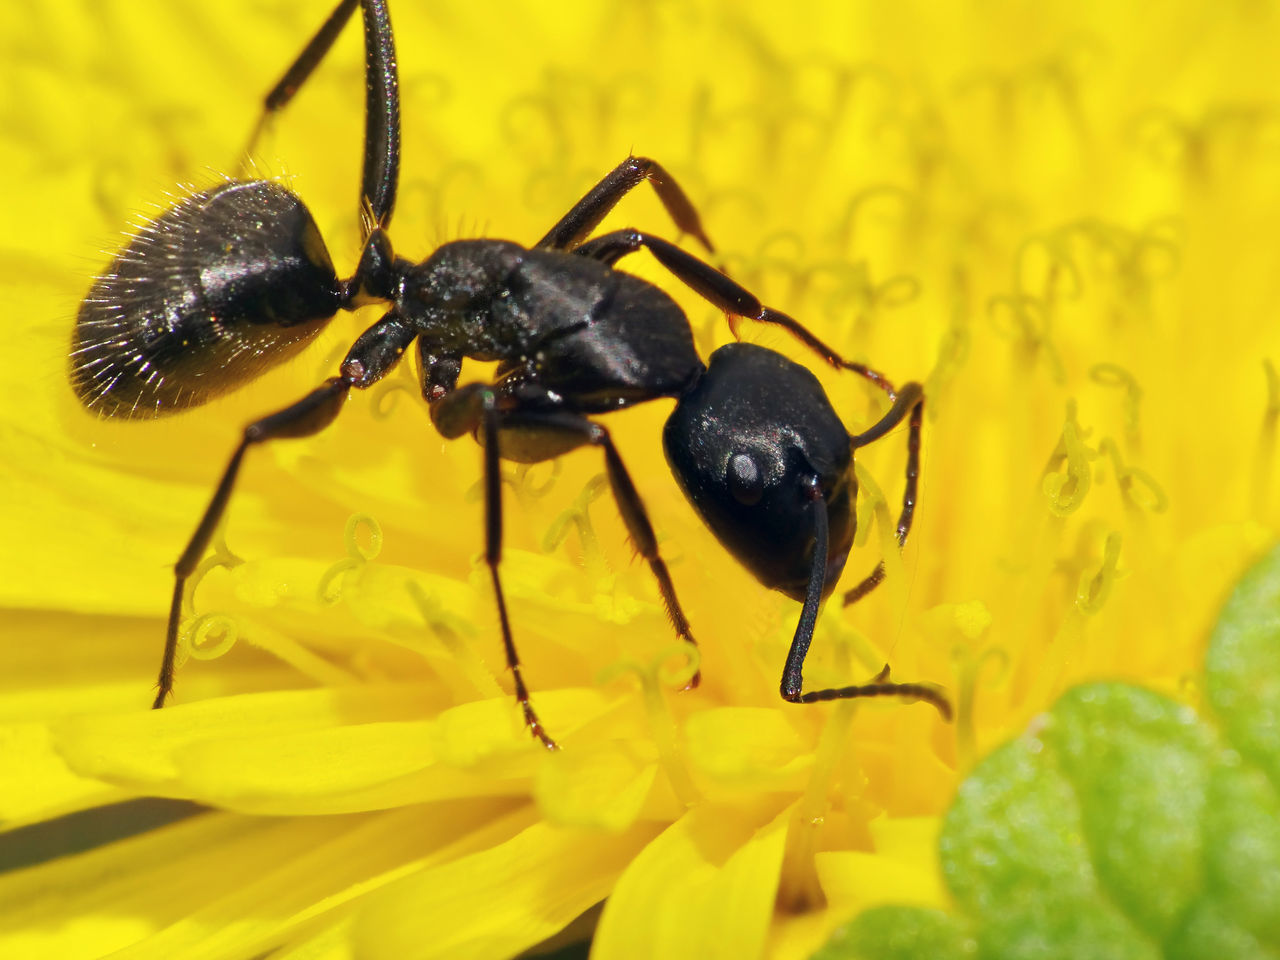 Camponotus Vagus - Serchio River Animal Themes Animal Wildlife Animals In The Wild Ant Ant On Flower Apocrita Arthropoda Black Color Camponotus Camponotus Vagus Close-up Flower Flower Head Formicidae Freshness Hexapoda Hymenoptera Insect Insecta Leaf Nature Yellow